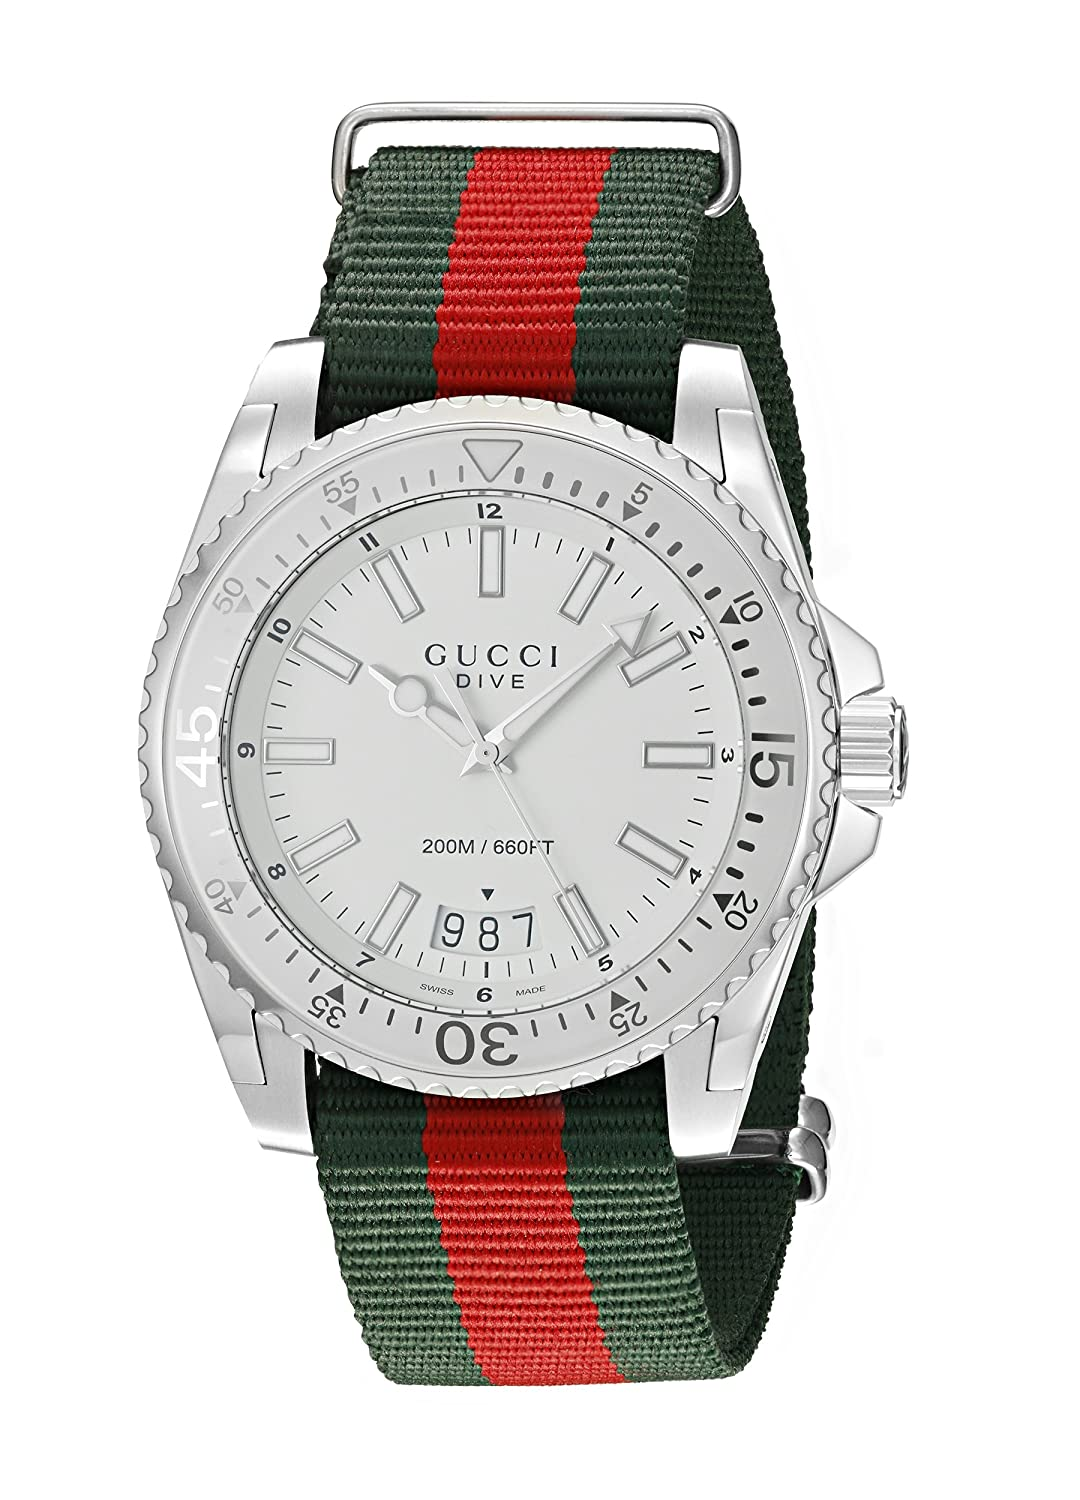 308603bd0daa0 Amazon.com  Gucci Dive Stainless Steel Watch with Striped Nylon Men s Band( Model YA136207)  Watches